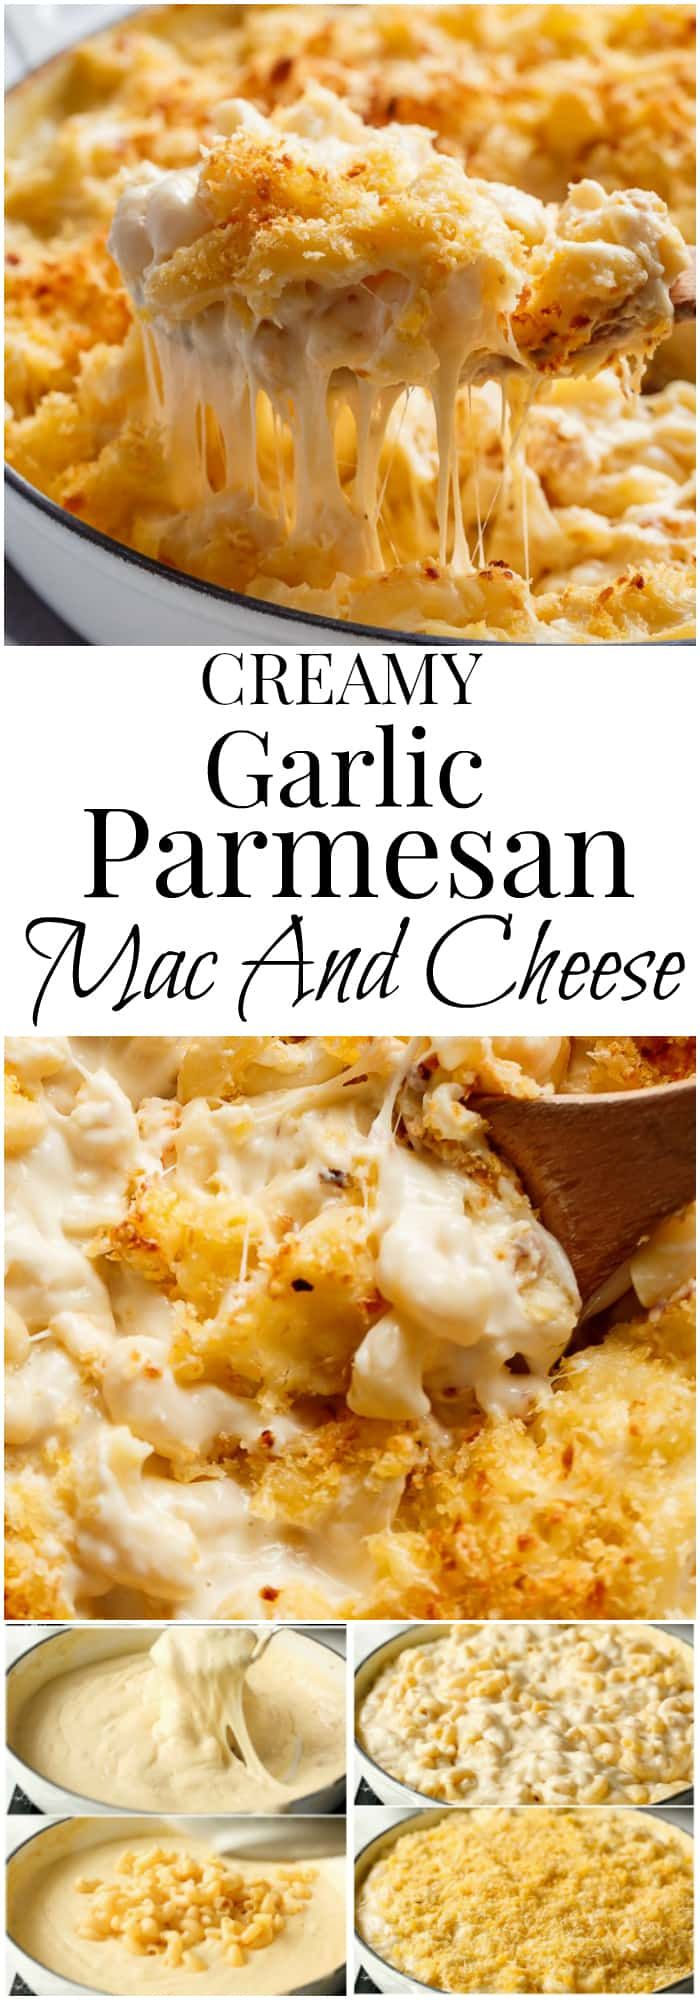 Garlic Parmesan Mac And Cheese is better than the original! A creamy garlic parmesan cheese sauce coats your macaroni, topped with parmesan fried bread crumbs, while saving some calories!   https://cafedelites.com